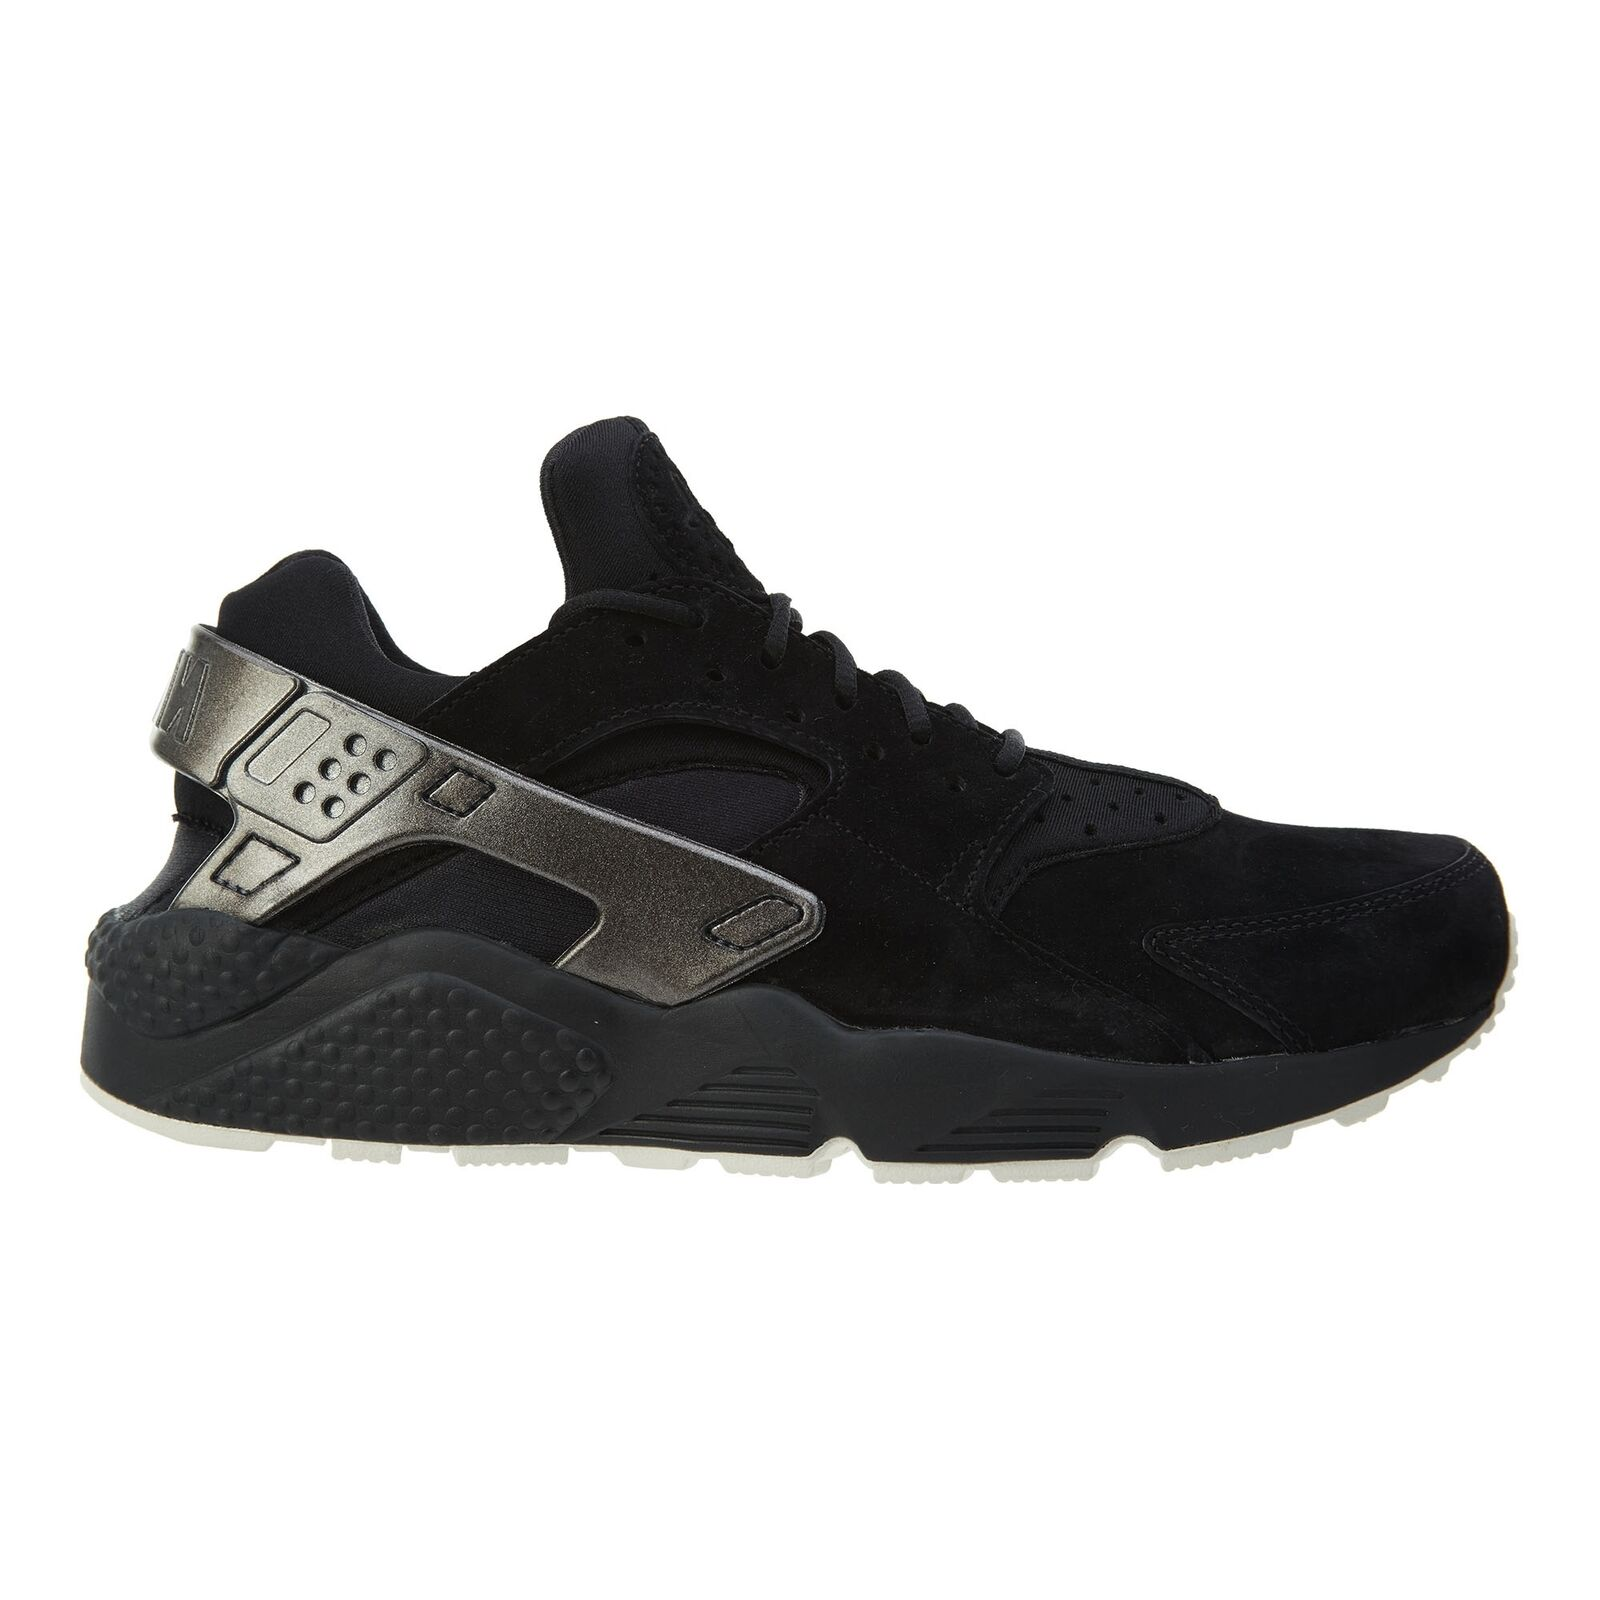 Nike Air Huarache Run Premium Mens 704830-014 Black Sail Running shoes Size 9